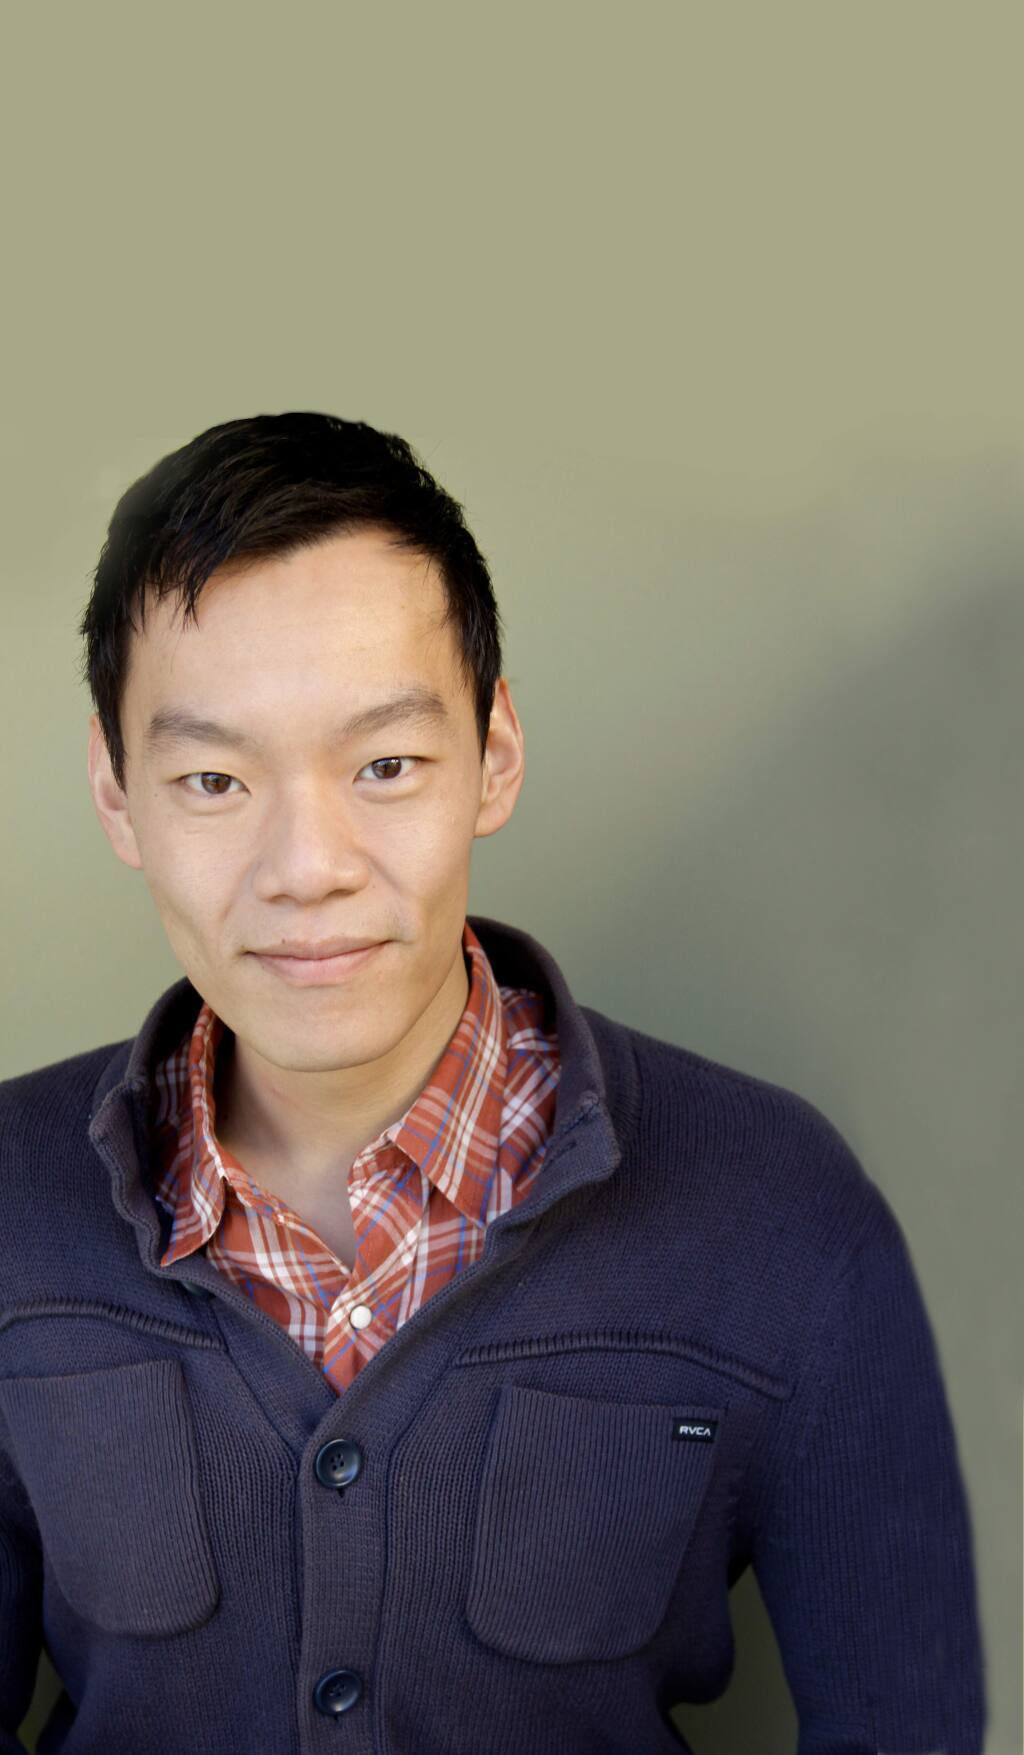 Aidan Park is a comedian, actor and advice blogger from Los Angeles, originally from South Korea. (AIDANPARK.COM)